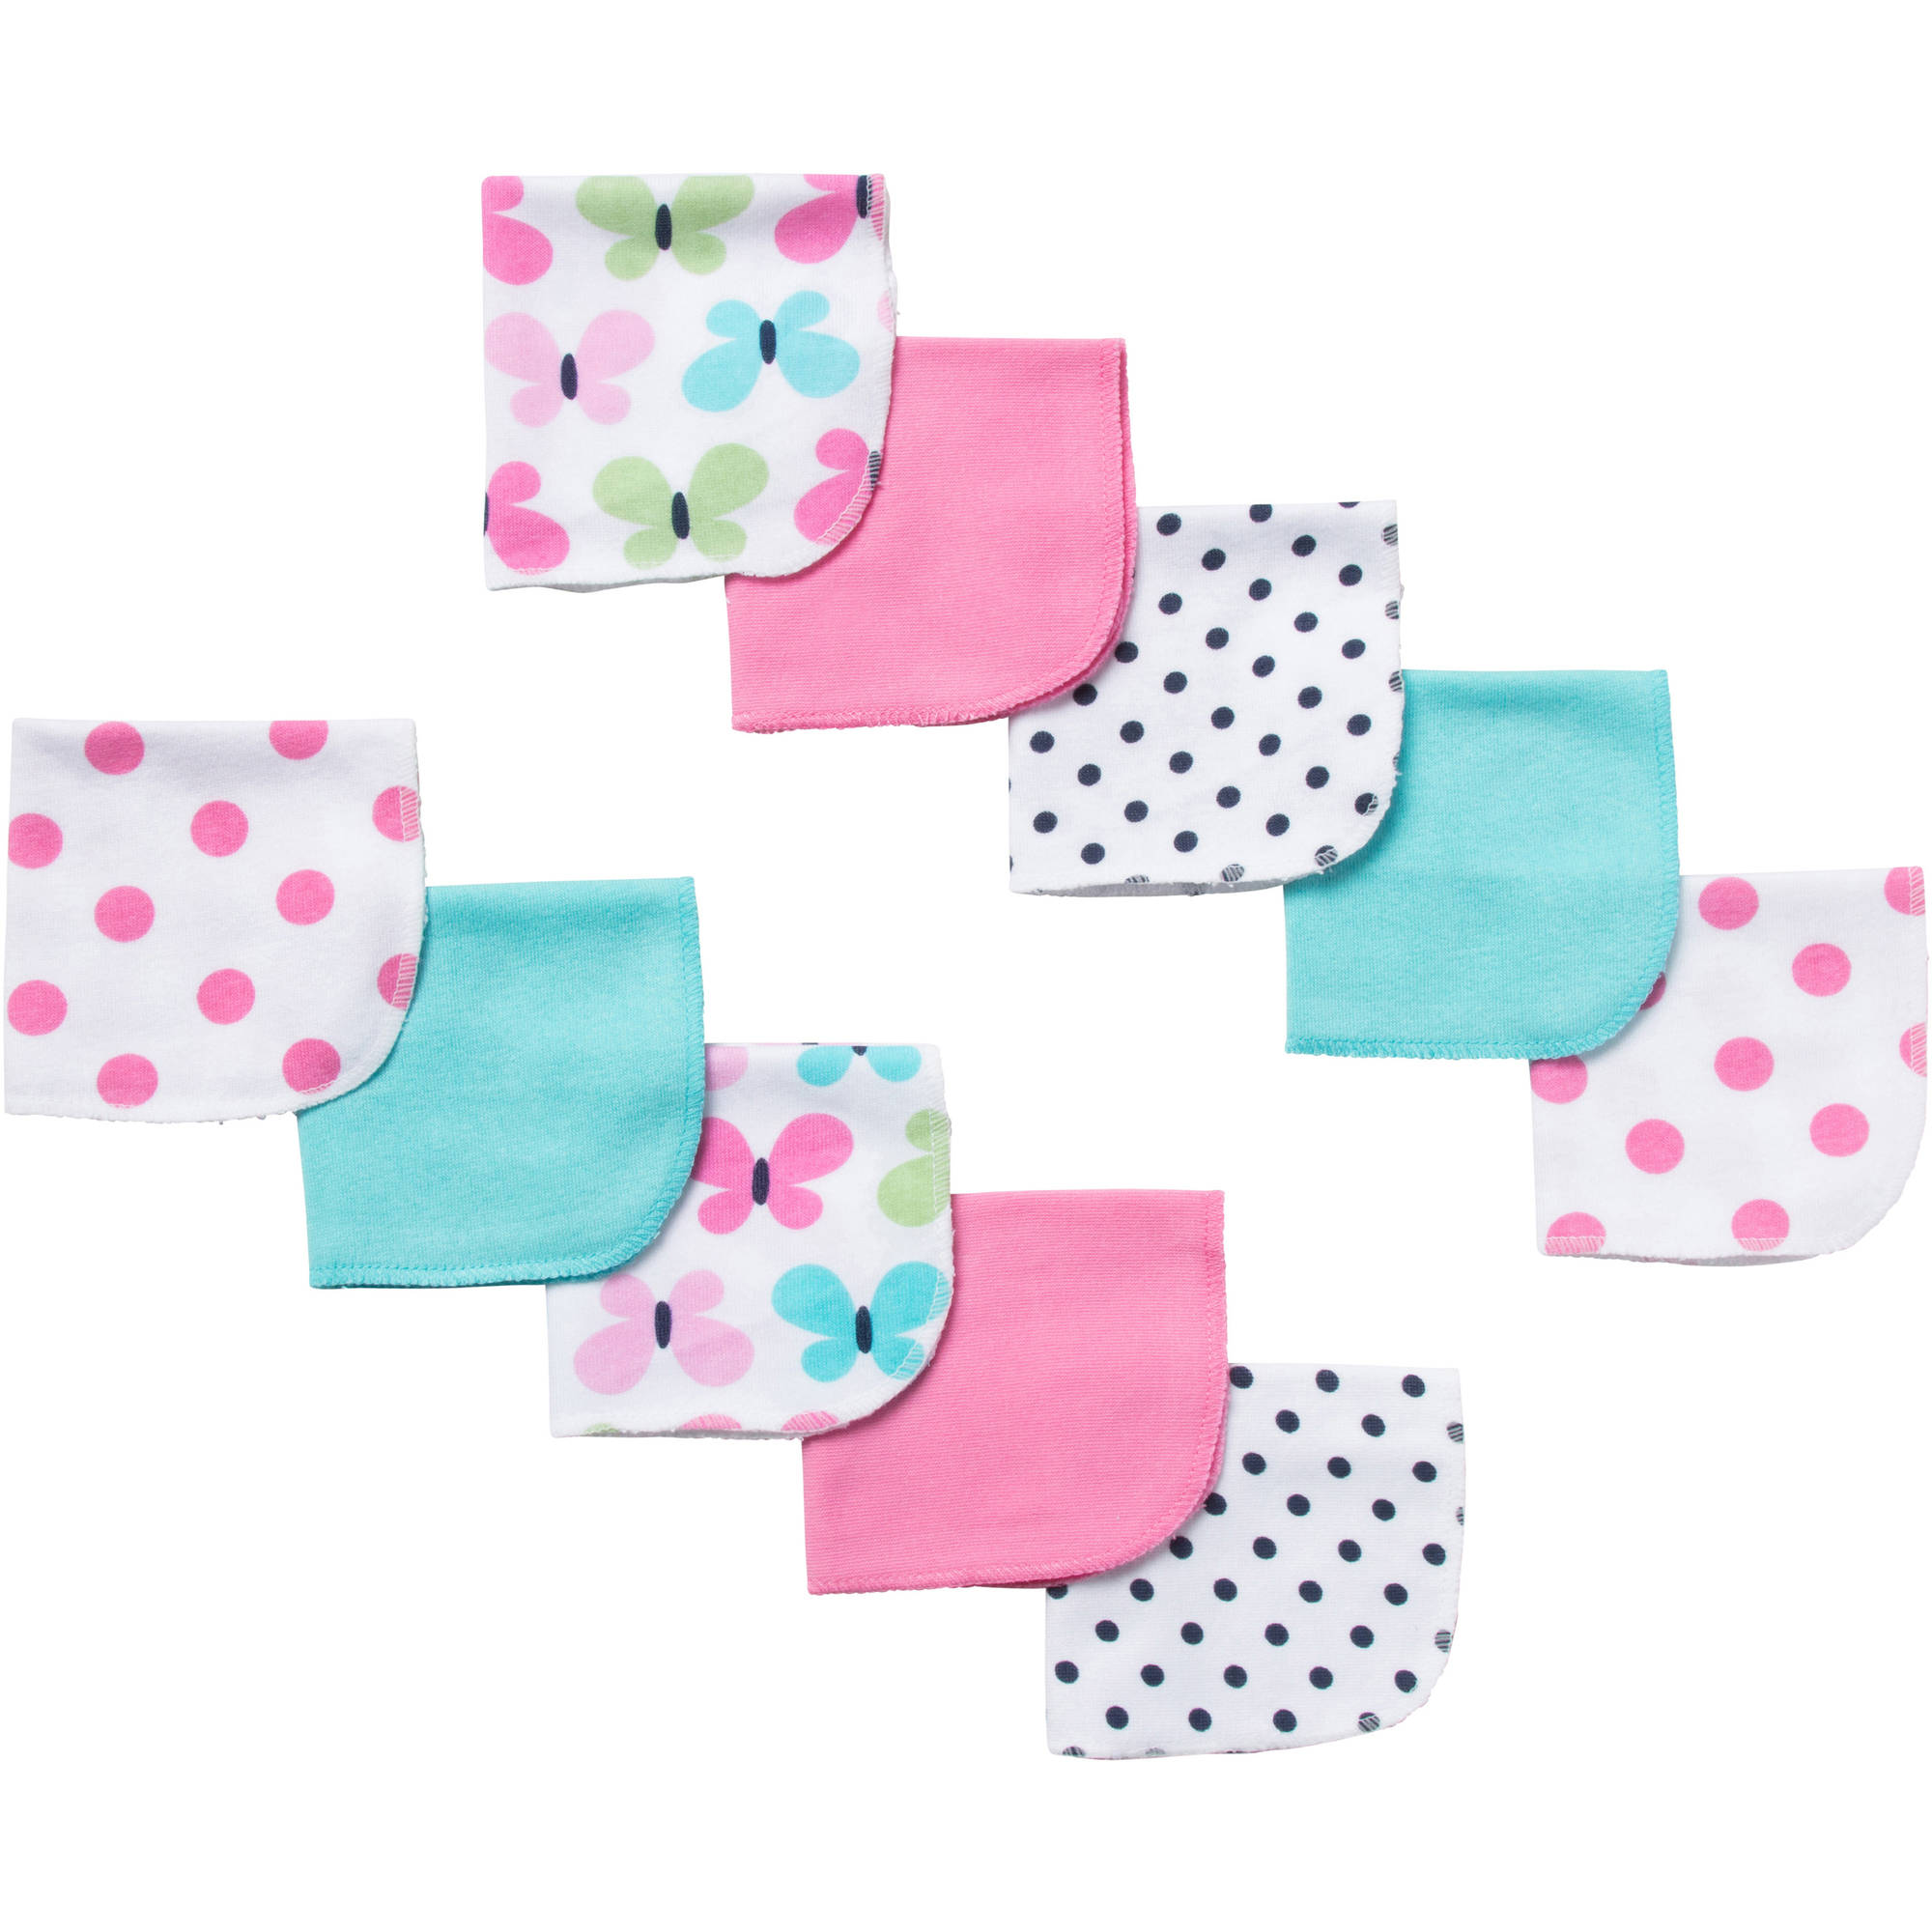 Gerber Newborn Baby Girl Terry Printed Butterfly Washcloths - 10 pack